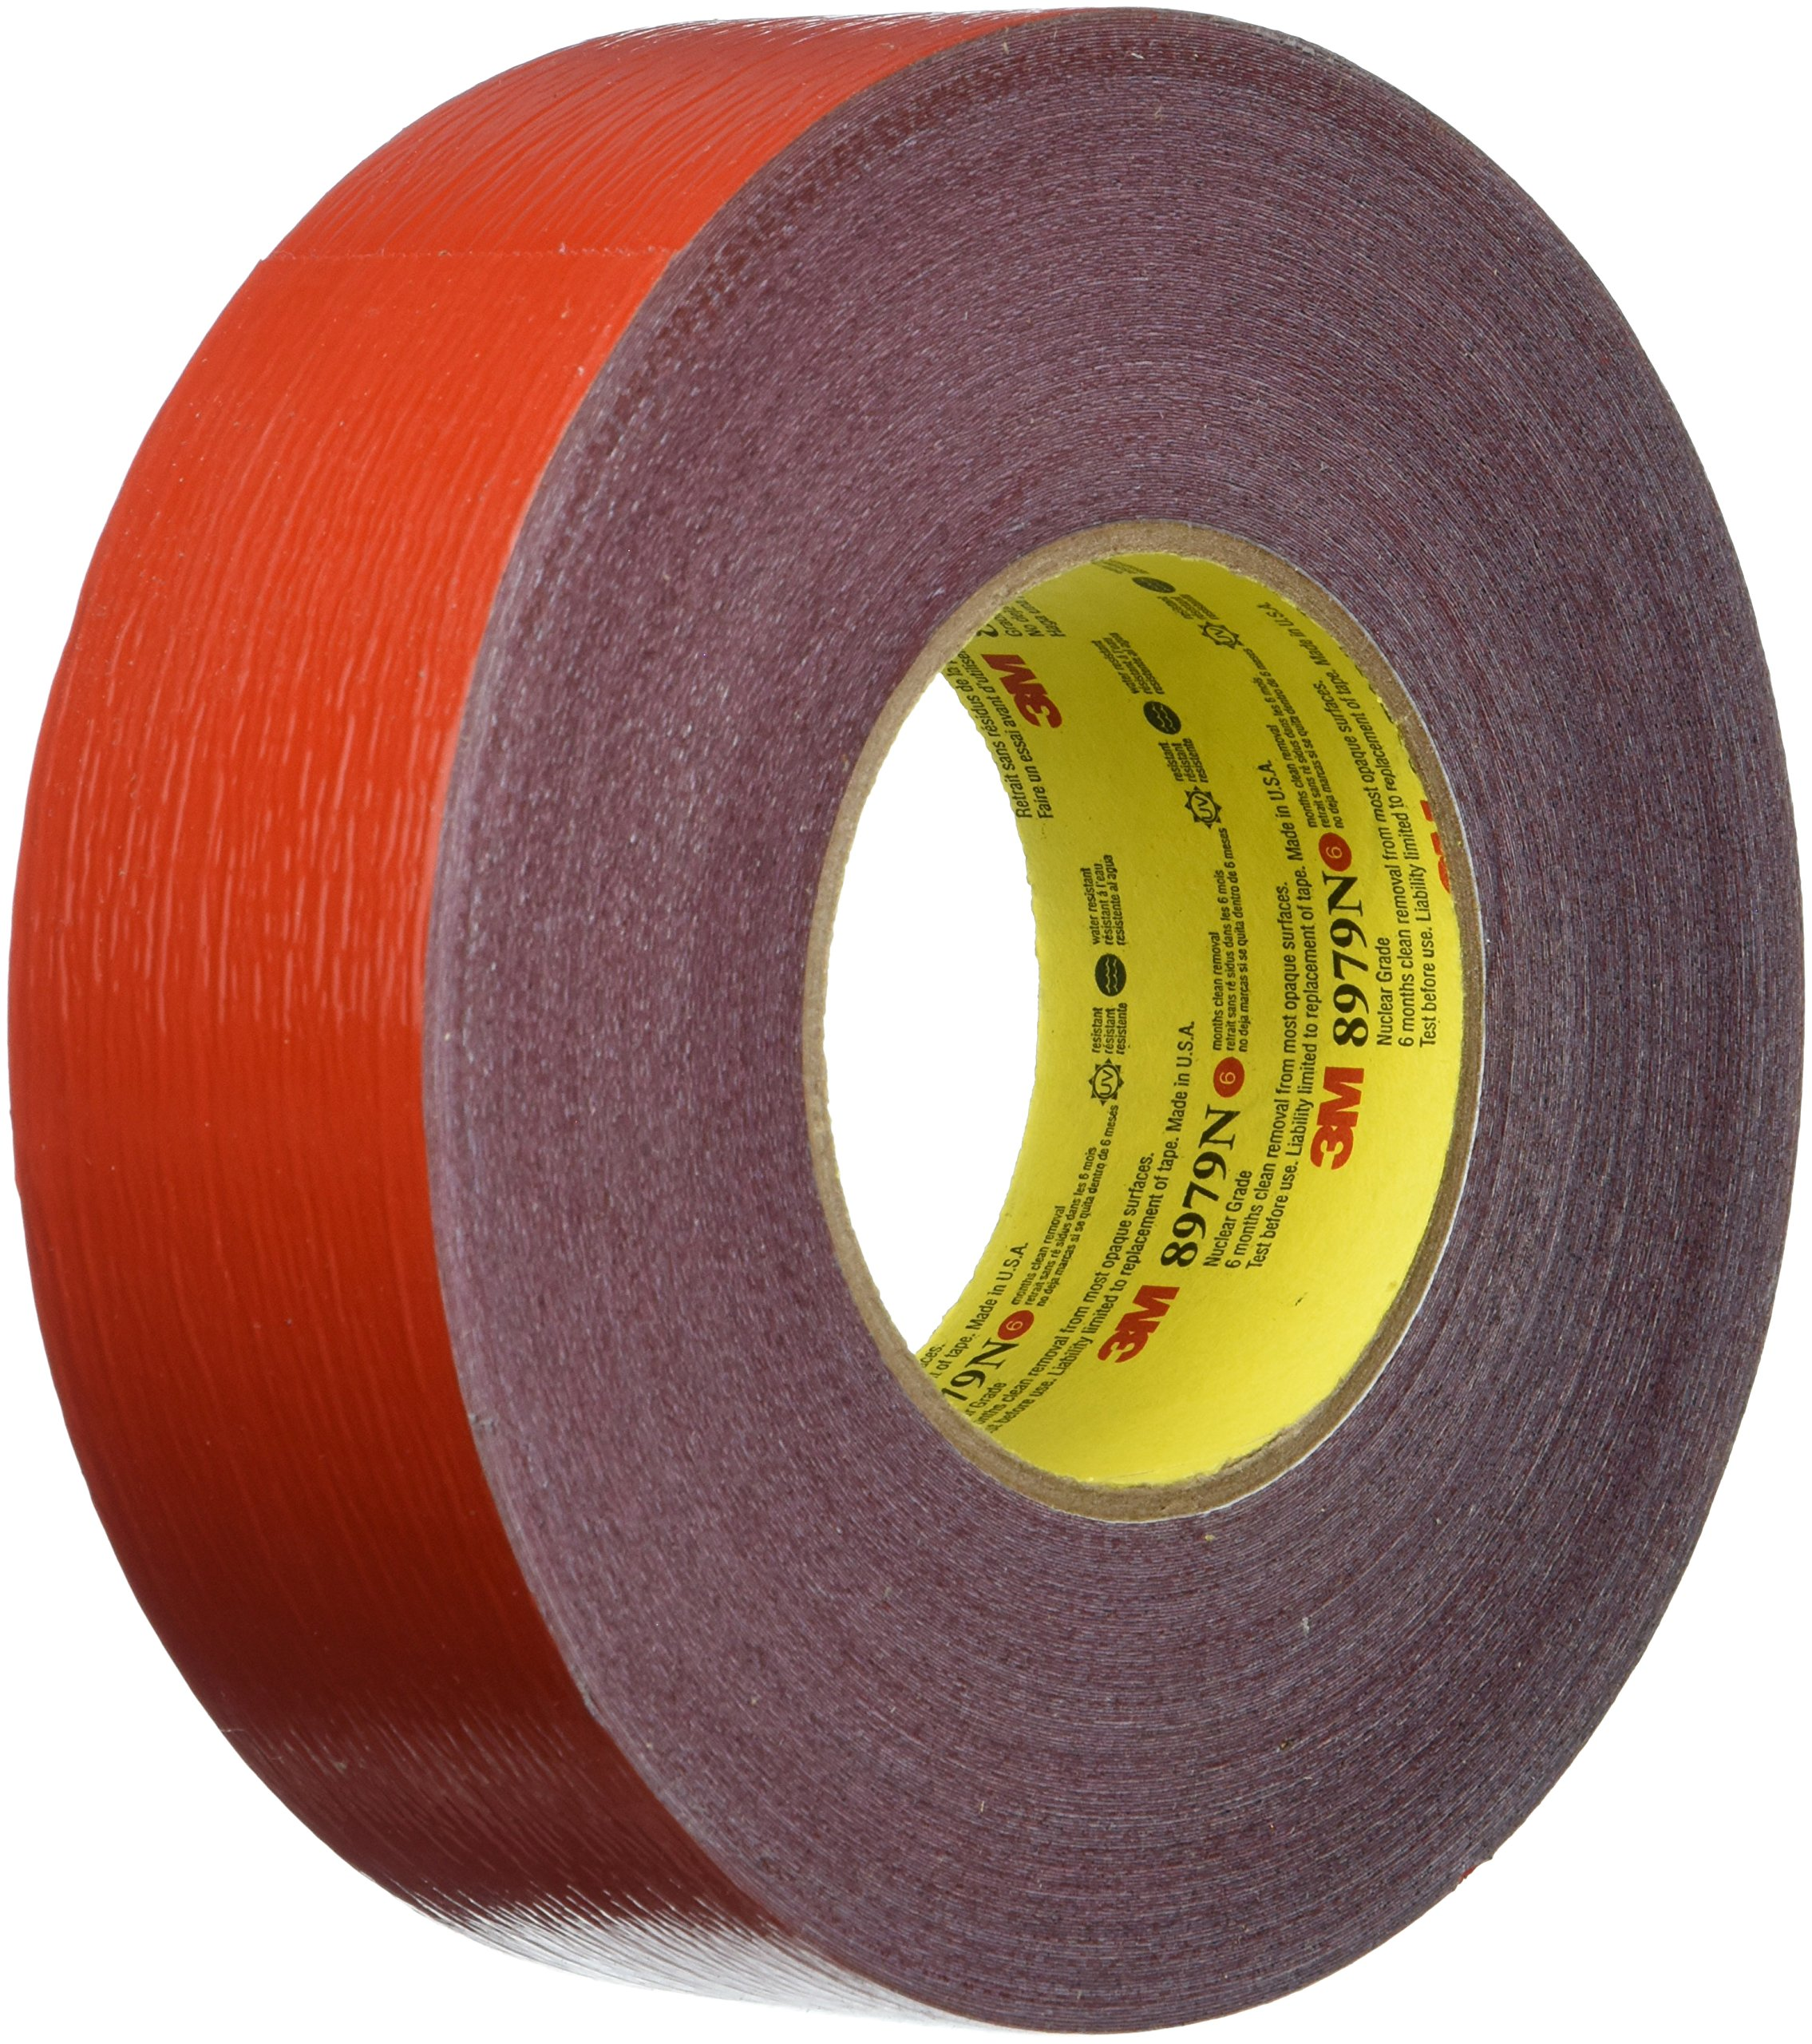 3M 8979N Performance Plus Nuclear Duct Tape, 48mm-by-54m, Red